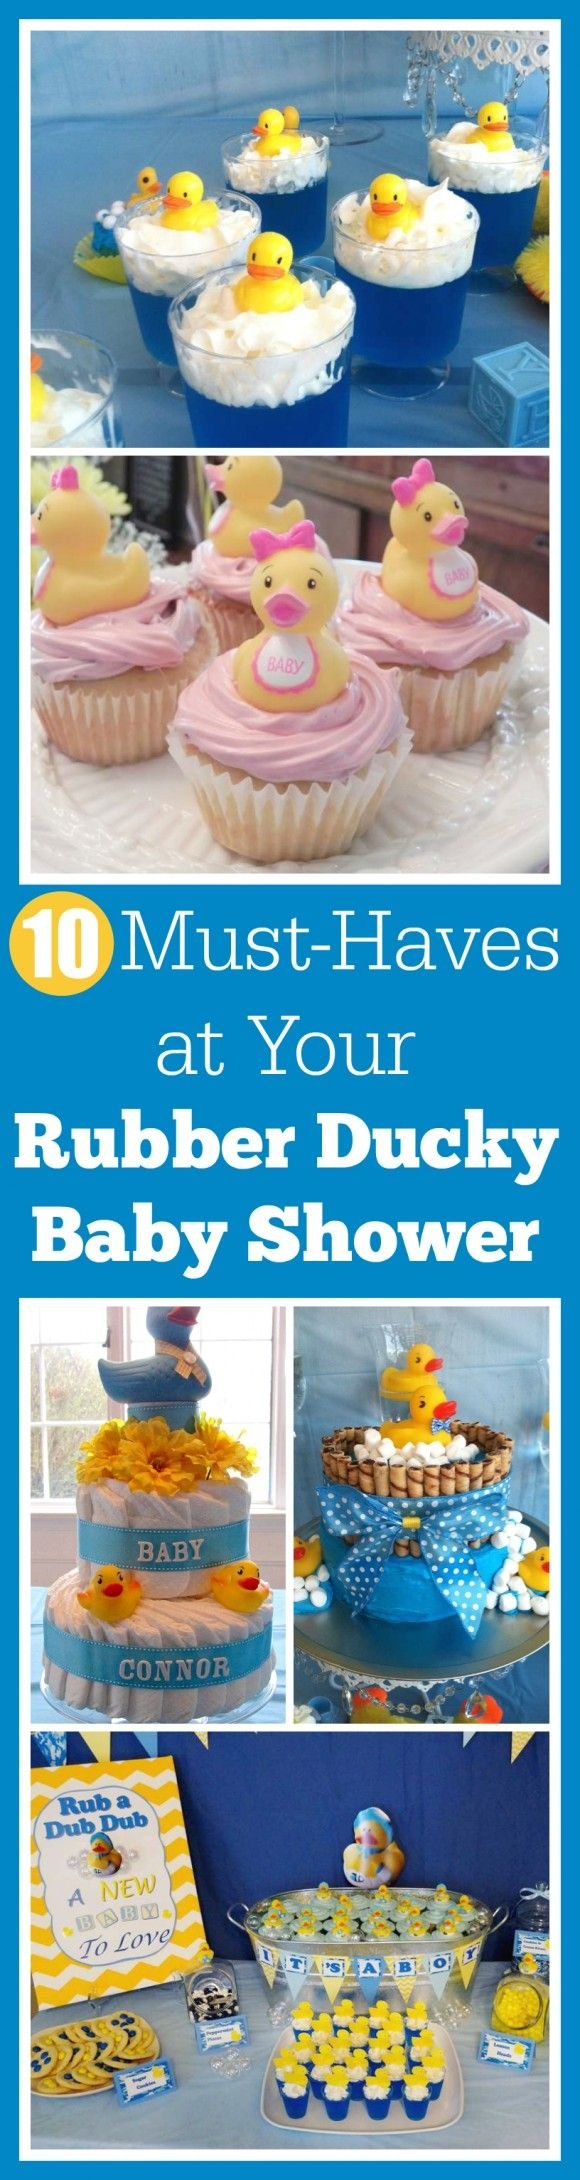 399 best rubber ducky shower ideas images on pinterest ducky 10 must haves at your rubber ducky baby shower